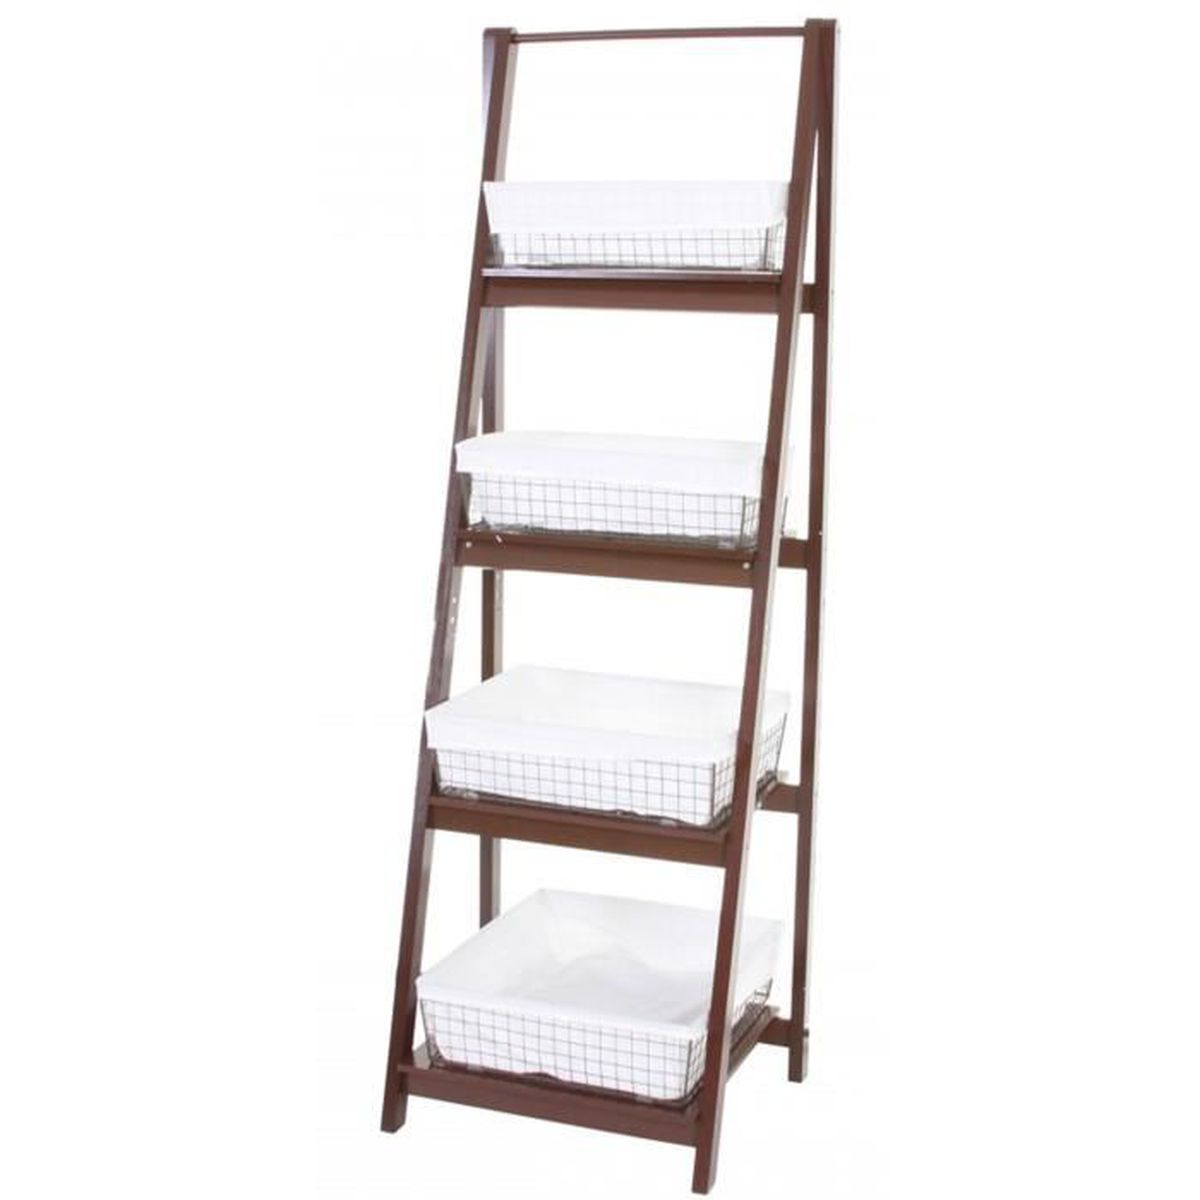 tiroir etagere panier coulissant pour dressing achat. Black Bedroom Furniture Sets. Home Design Ideas